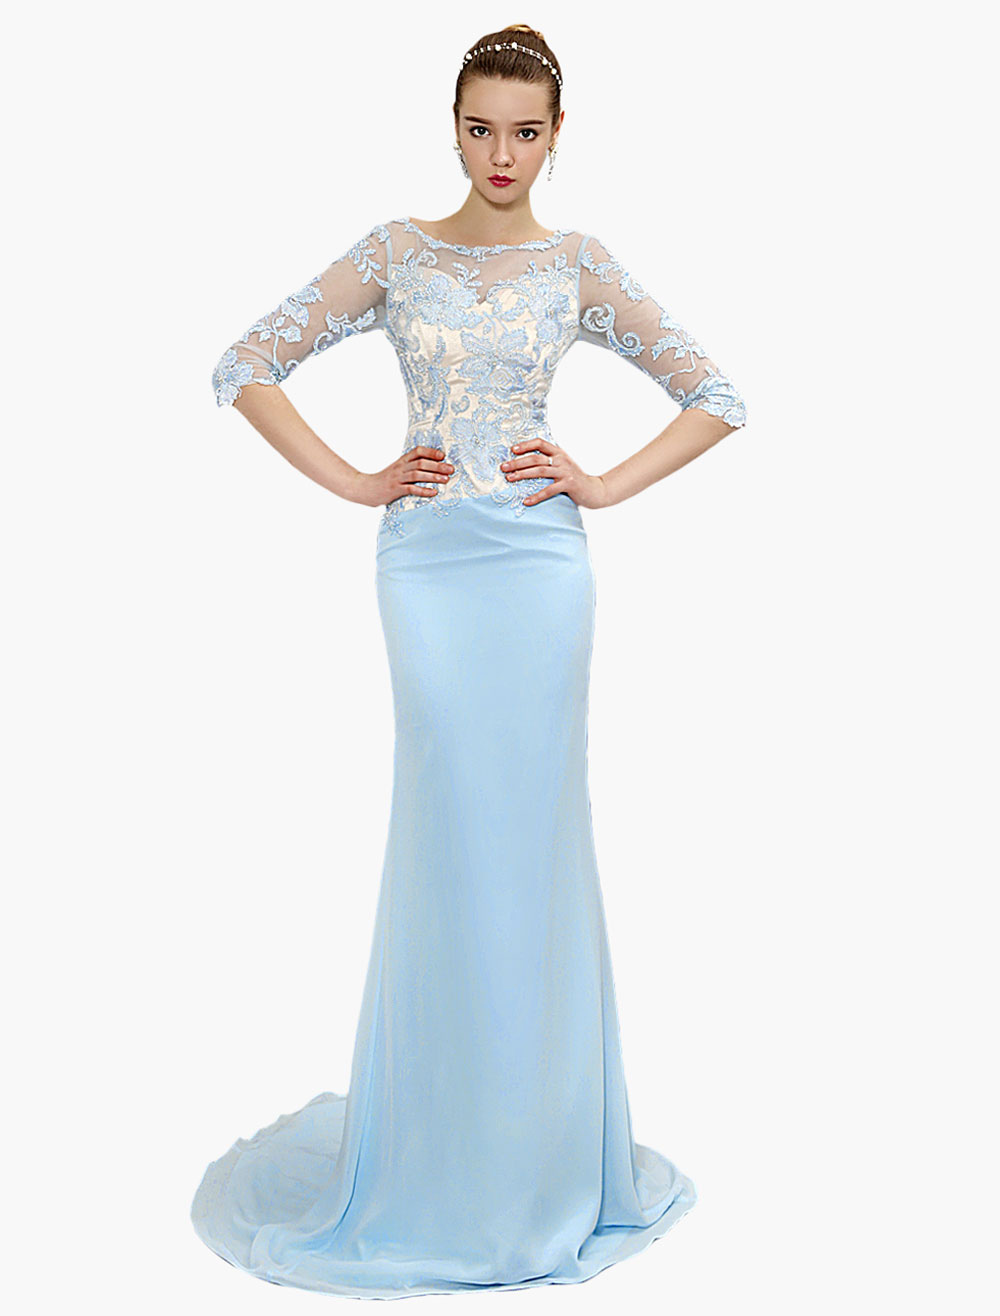 Pastel Blue Evening Dress Mermaid Backless Party Dress Illusion Neck Embroidered Chiffon Prom Dress With Train